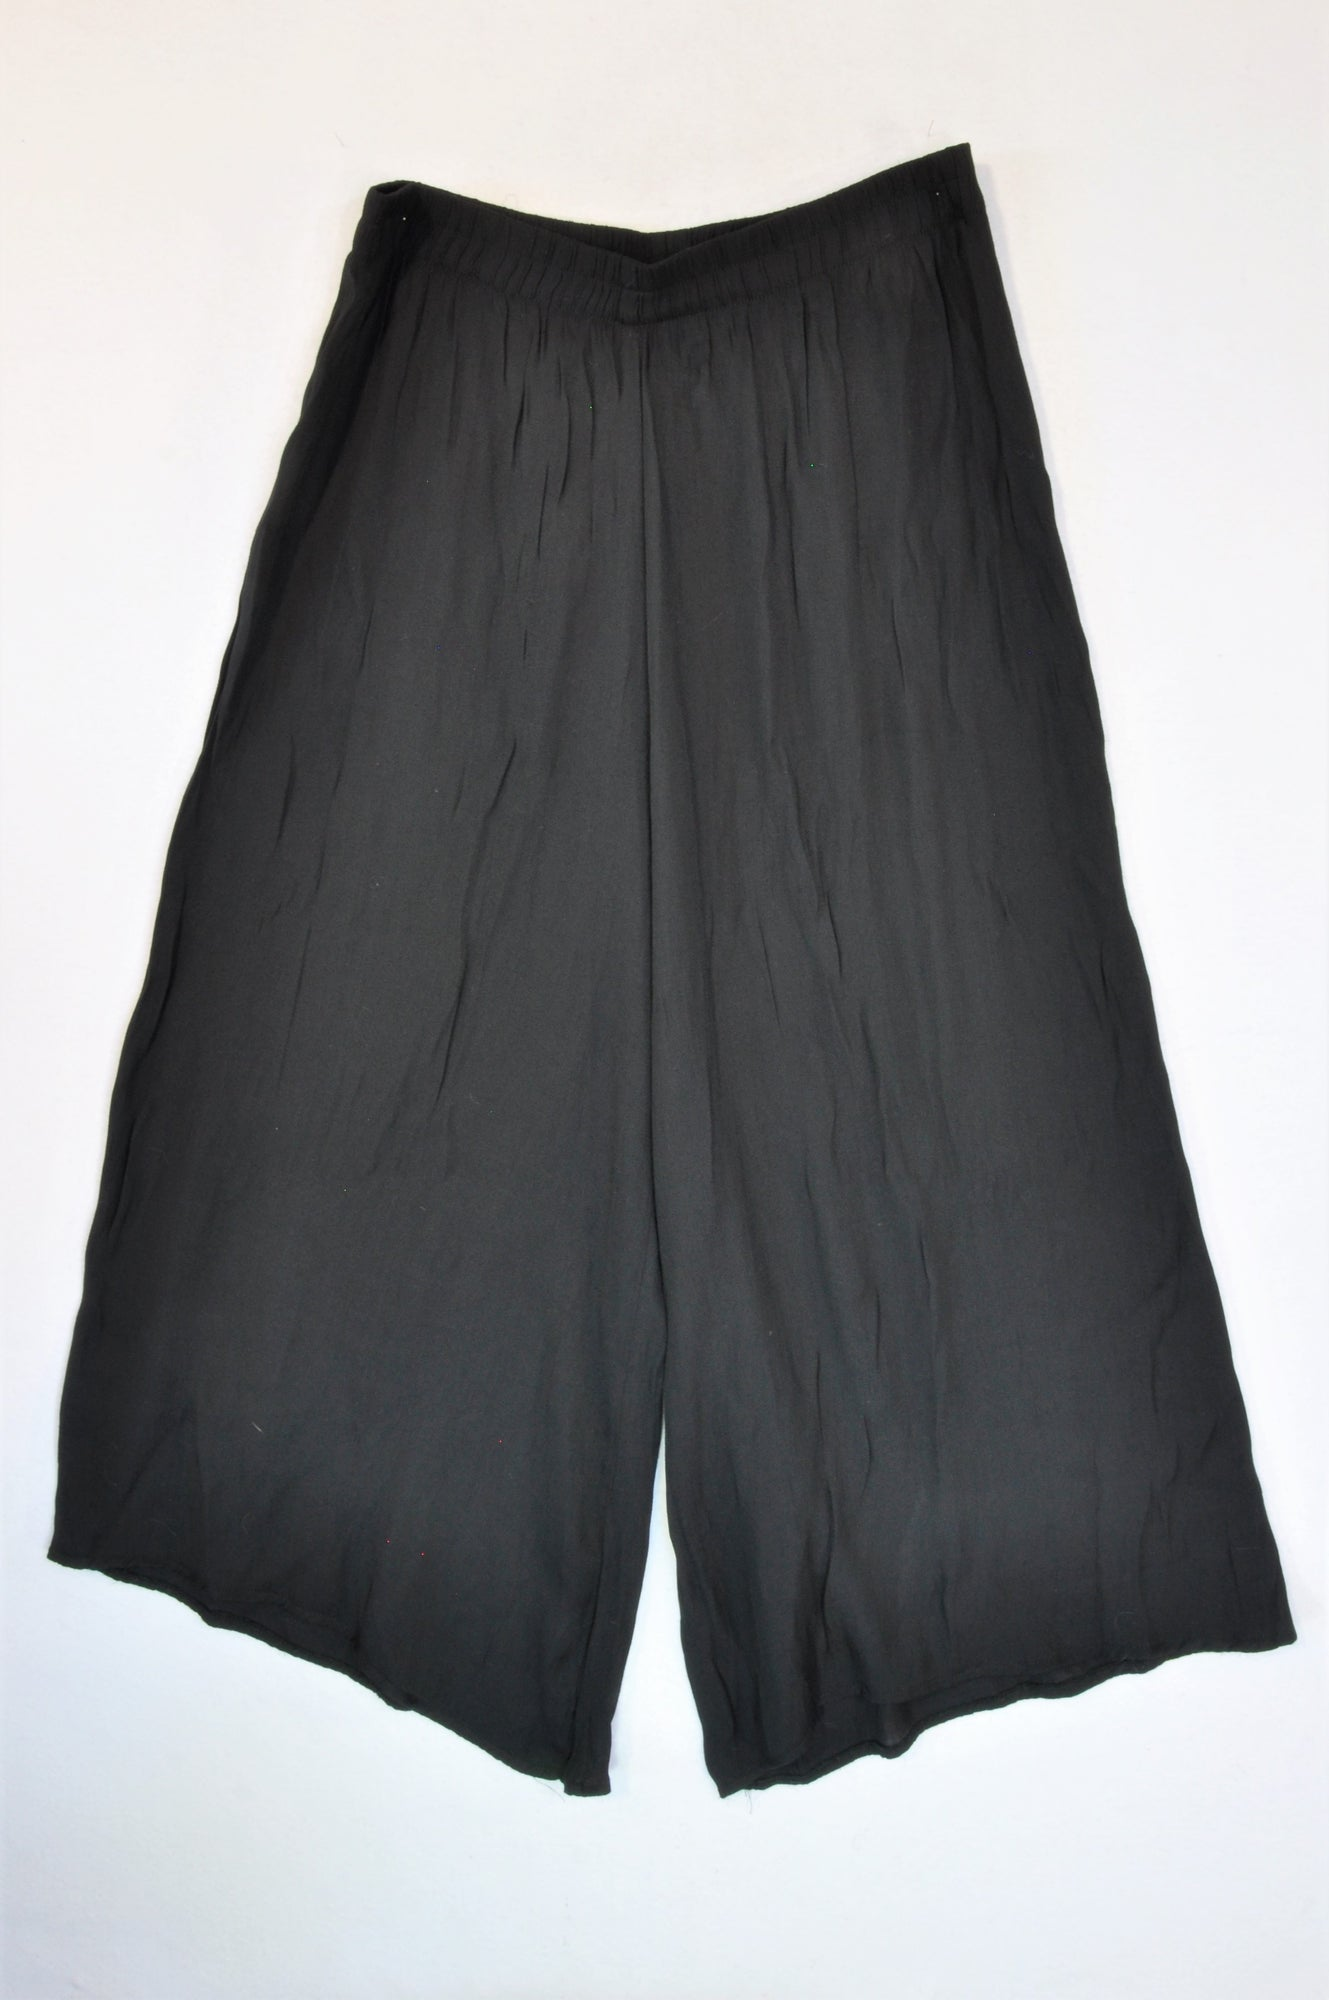 Woolworths Black Pants Women Size 10